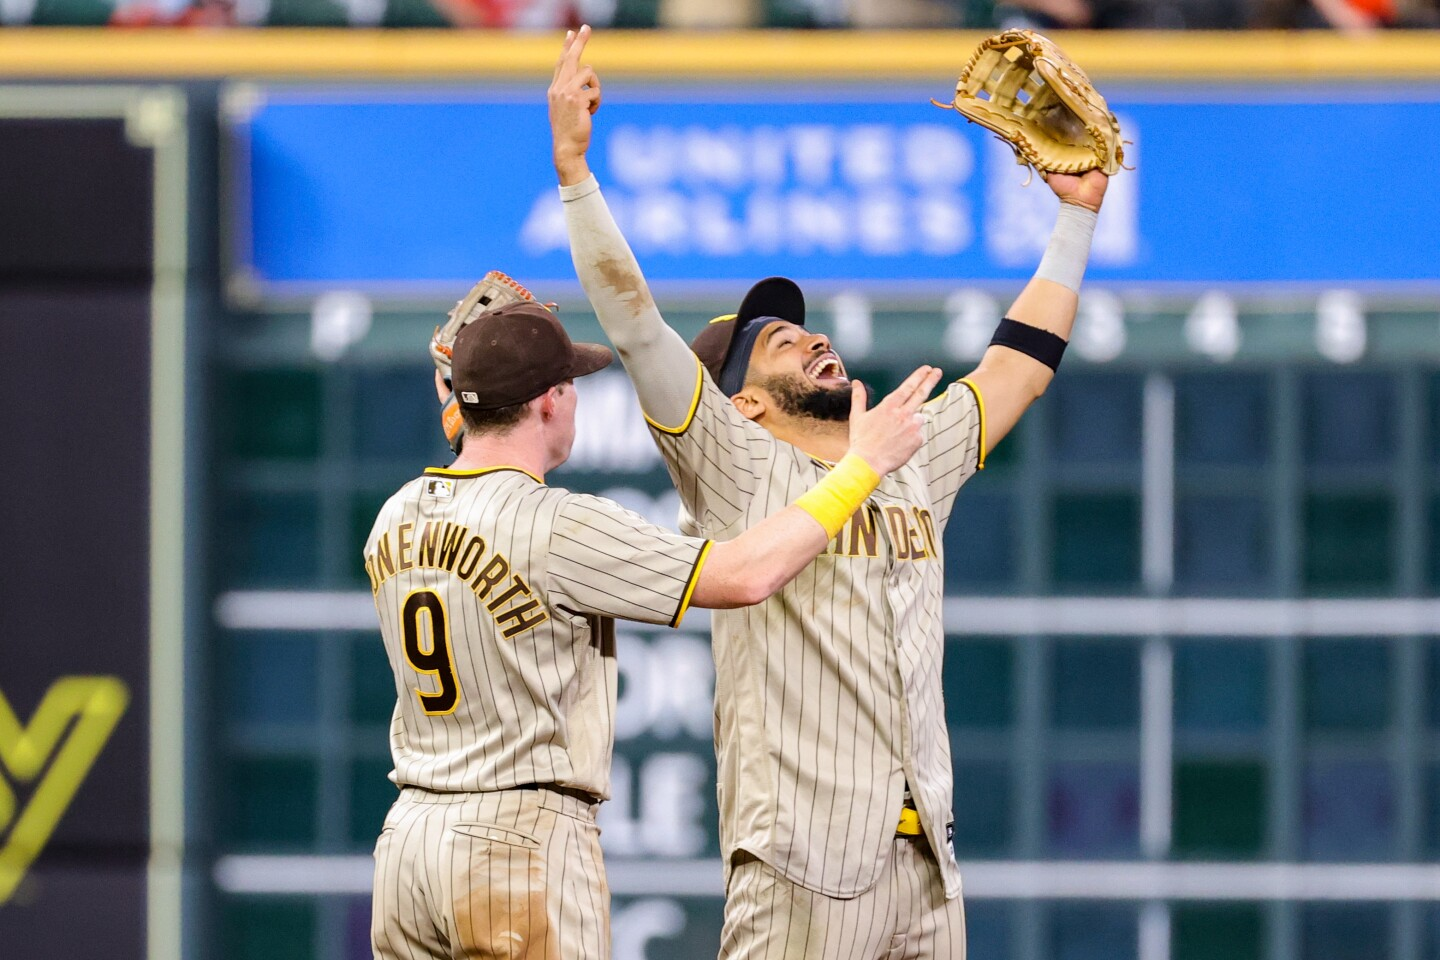 HOUSTON, TEXAS - MAY 28: Fernando Tatis Jr. #23 and Jake Cronenworth #9 of the San Diego Padres celebrate defeating the Houston Astros 10-3 at Minute Maid Park on May 28, 2021 in Houston, Texas. (Photo by Carmen Mandato/Getty Images)